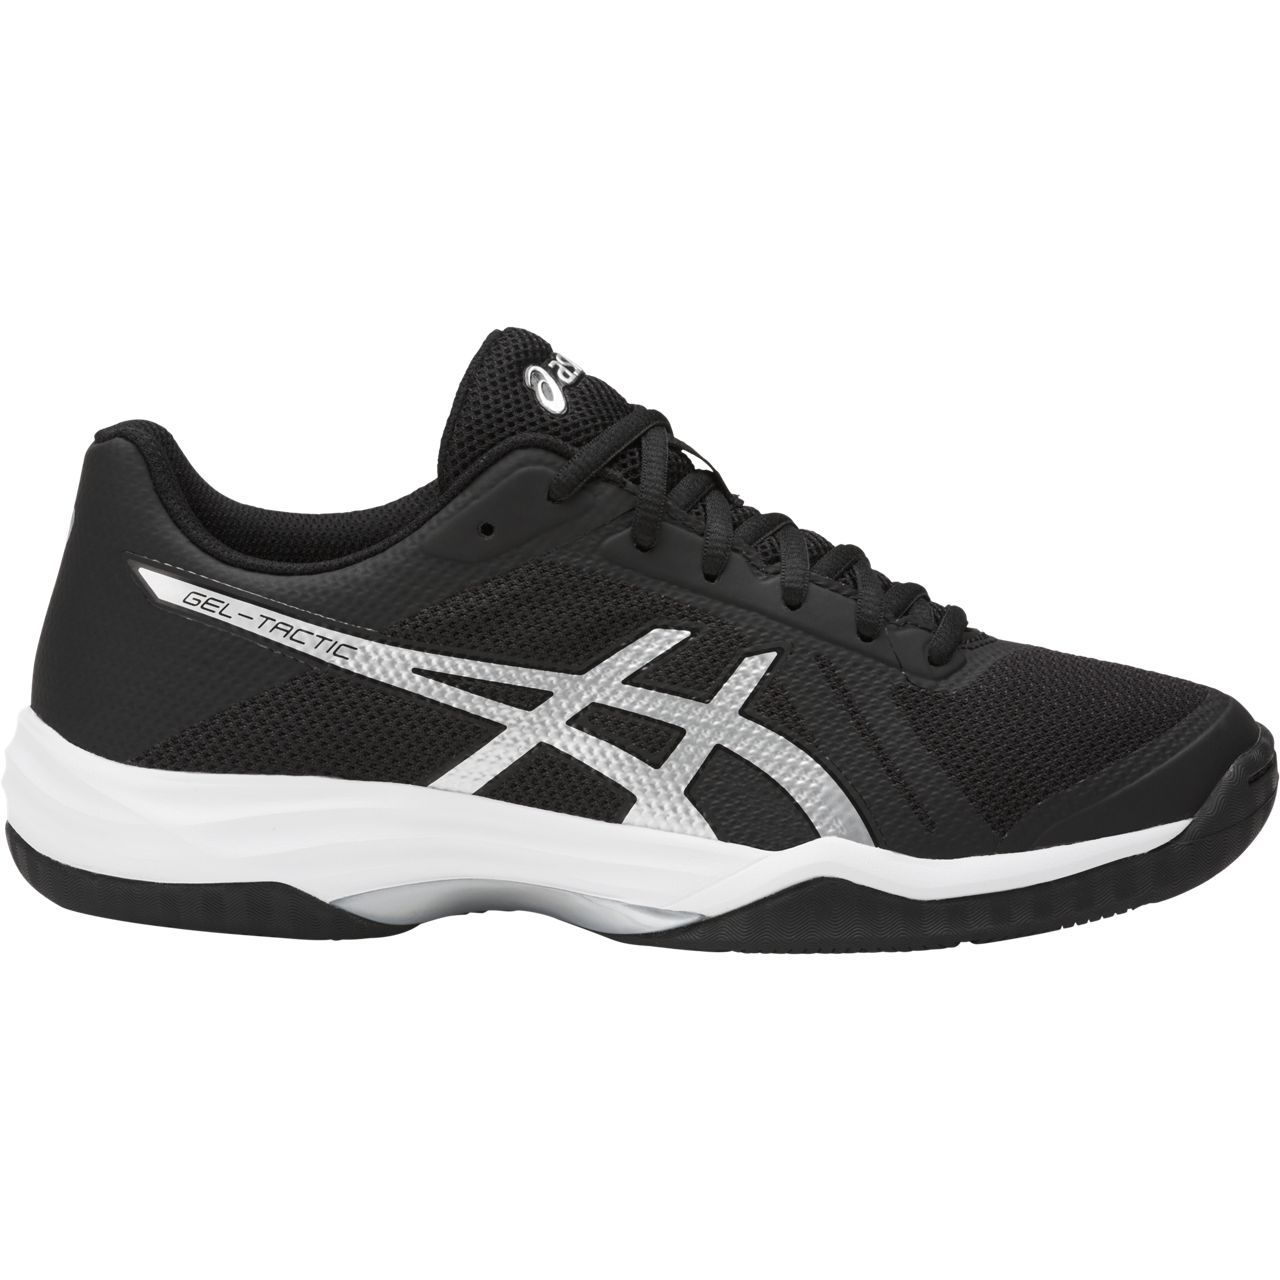 Women's Asics Gel-Tactic 2 Volleyball Shoe in Black/Silver/White